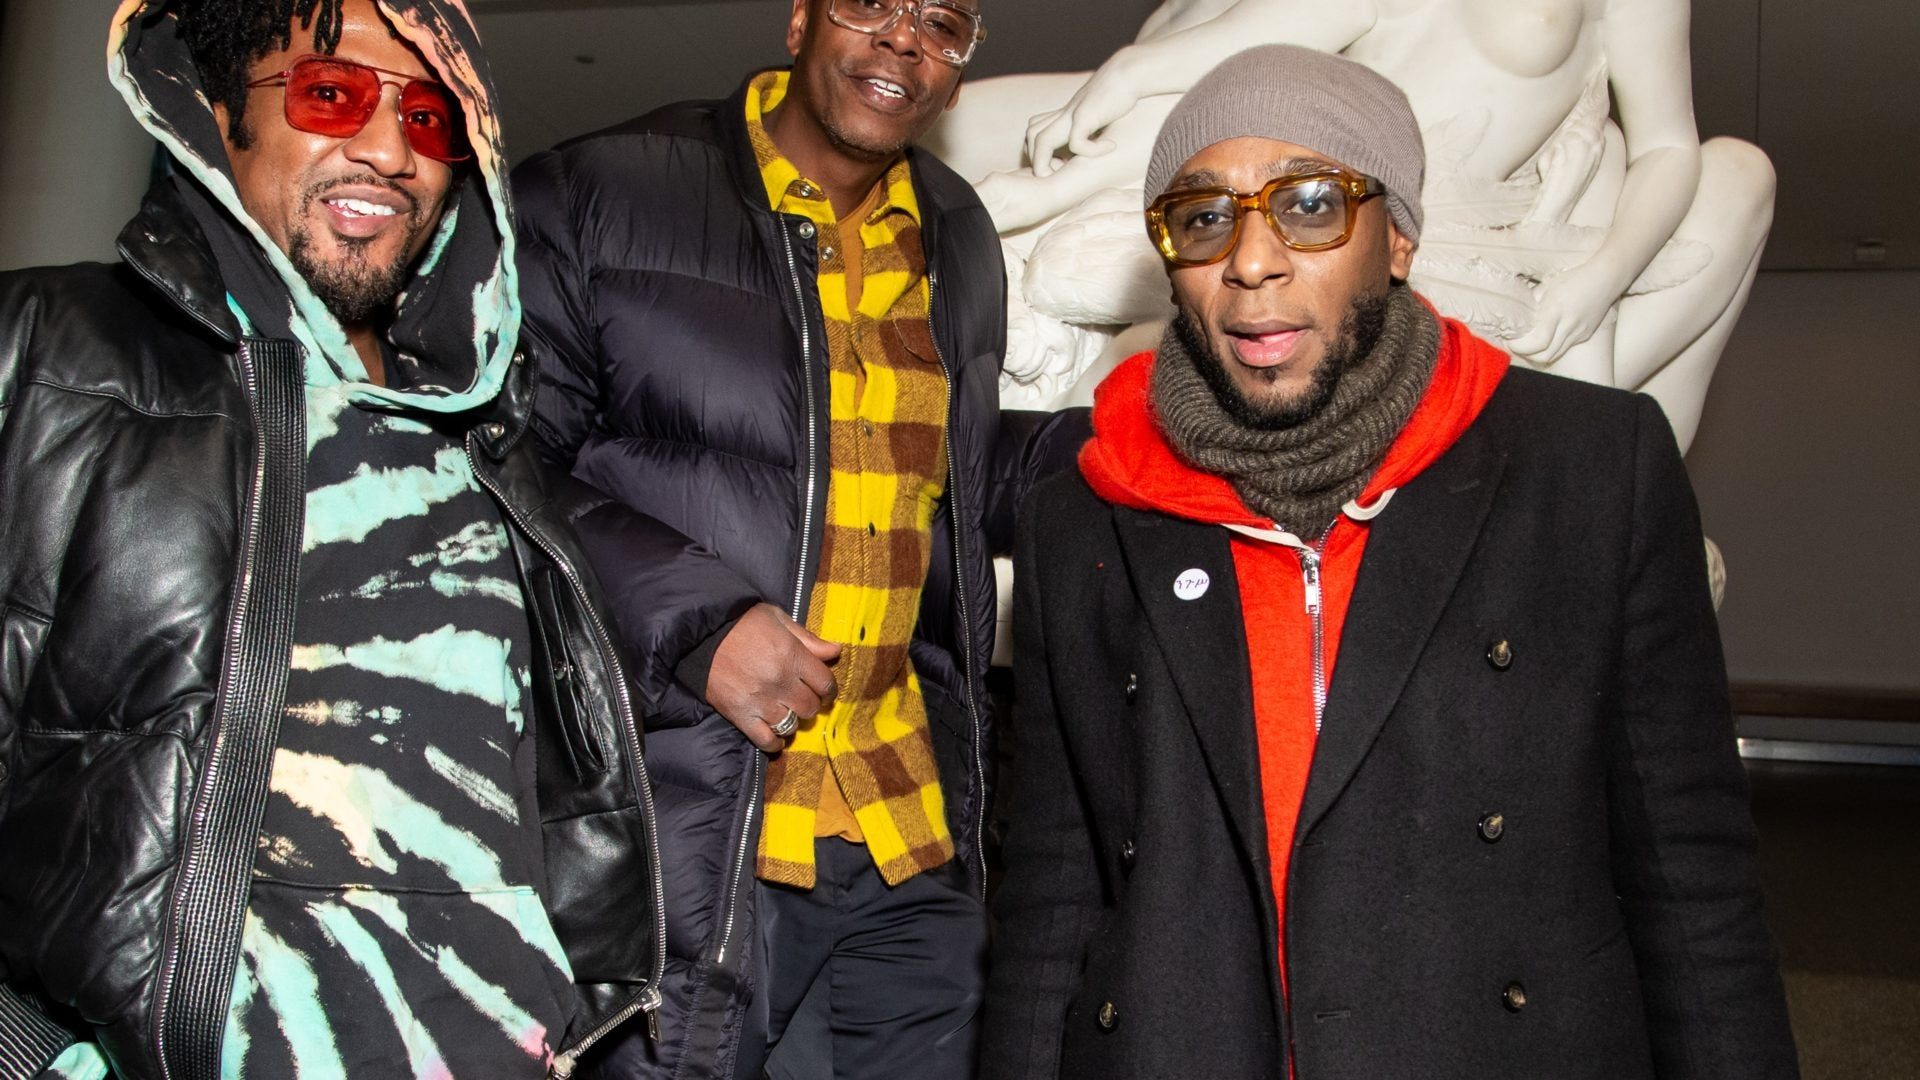 Yasiin Bey's 'Negus' Exhibit Championed By Q-Tip, Dave Chappelle and More